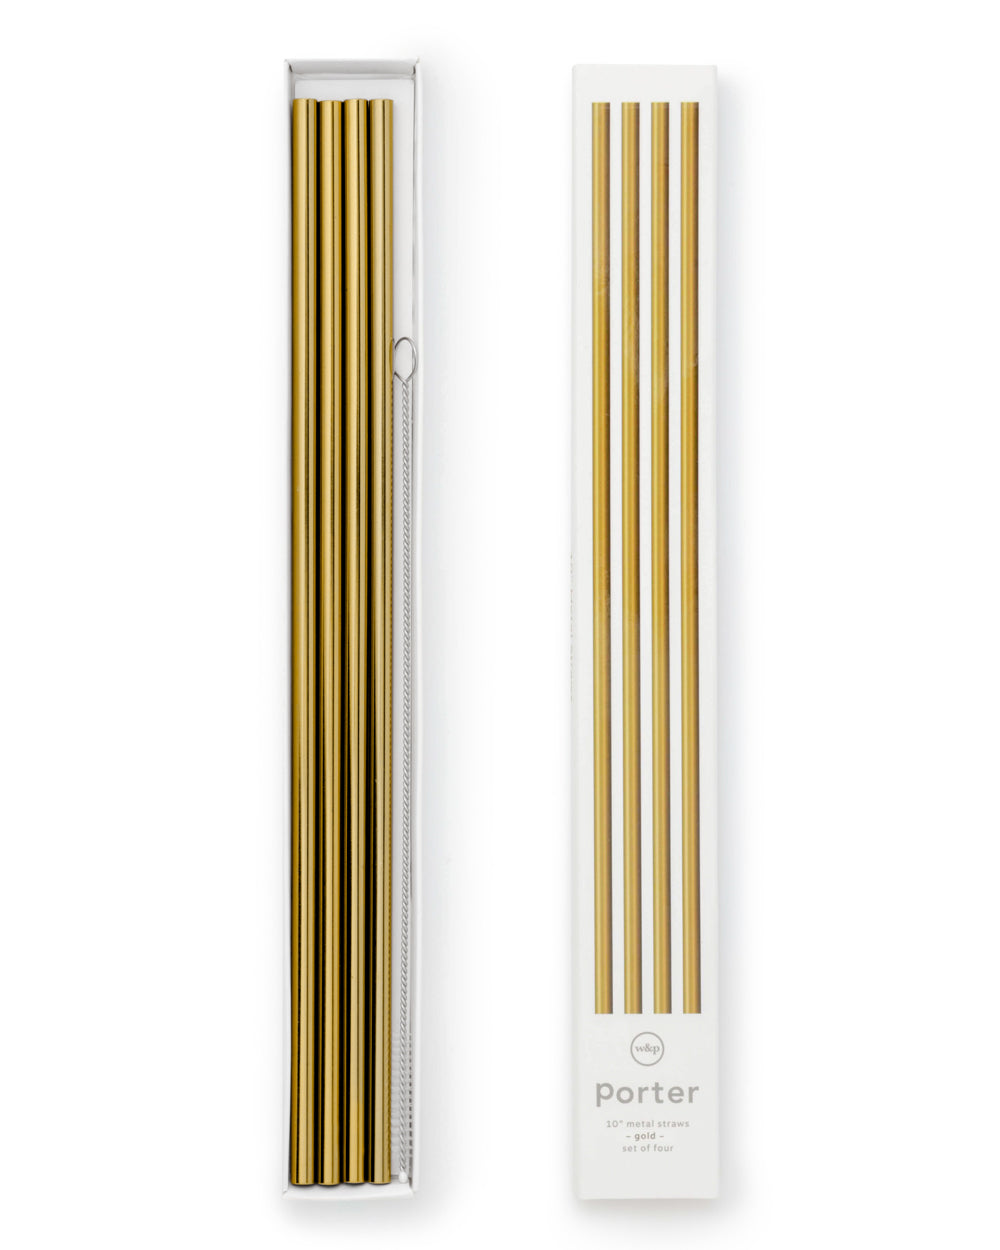 Porter Metal Straws - 25.4 cm - Set of 4 - Gold